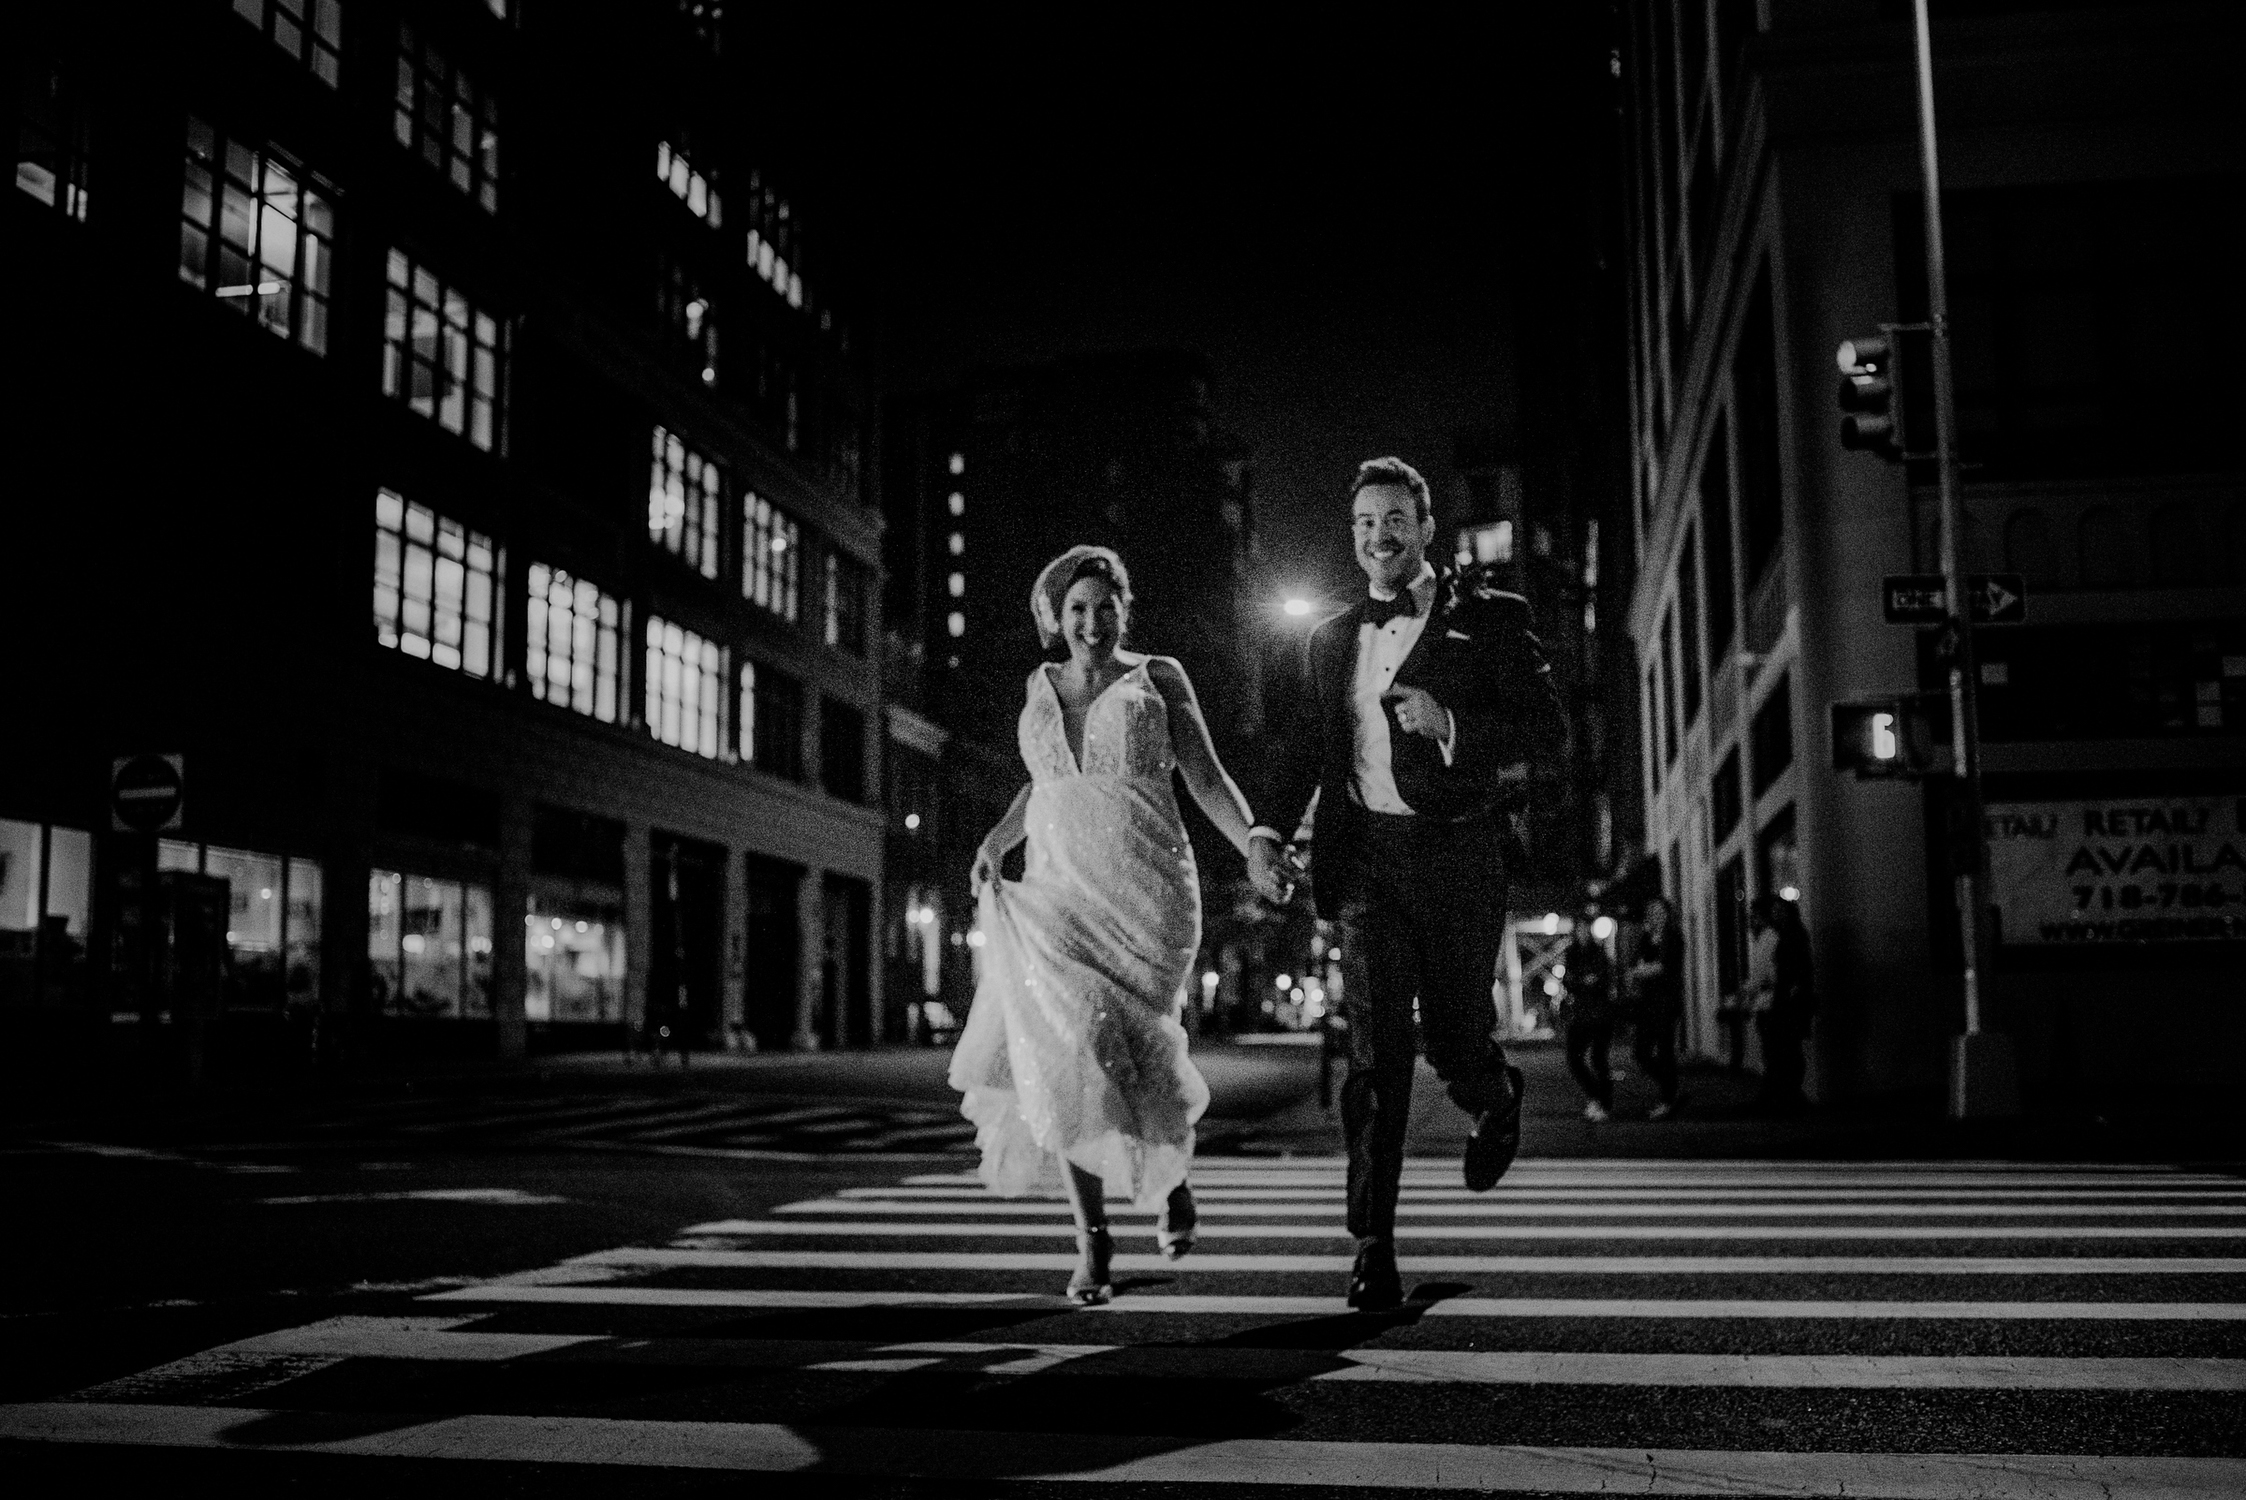 happy couple running through streets of nyc in wedding attire